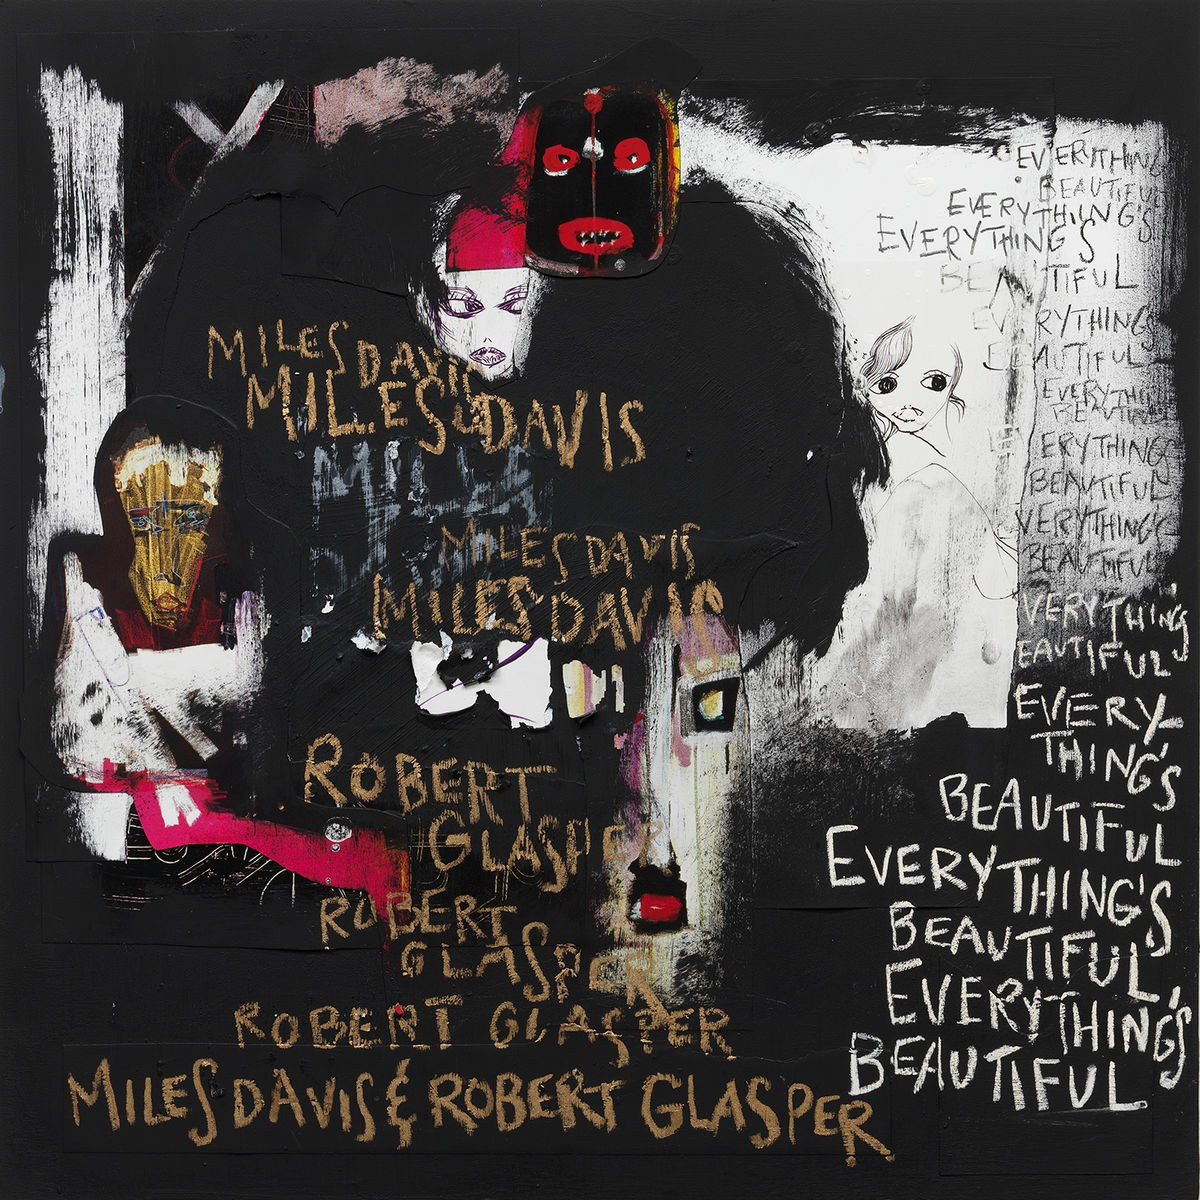 Miles Davis & Robert Glasper - Everything's Beautiful CD - 88875157812